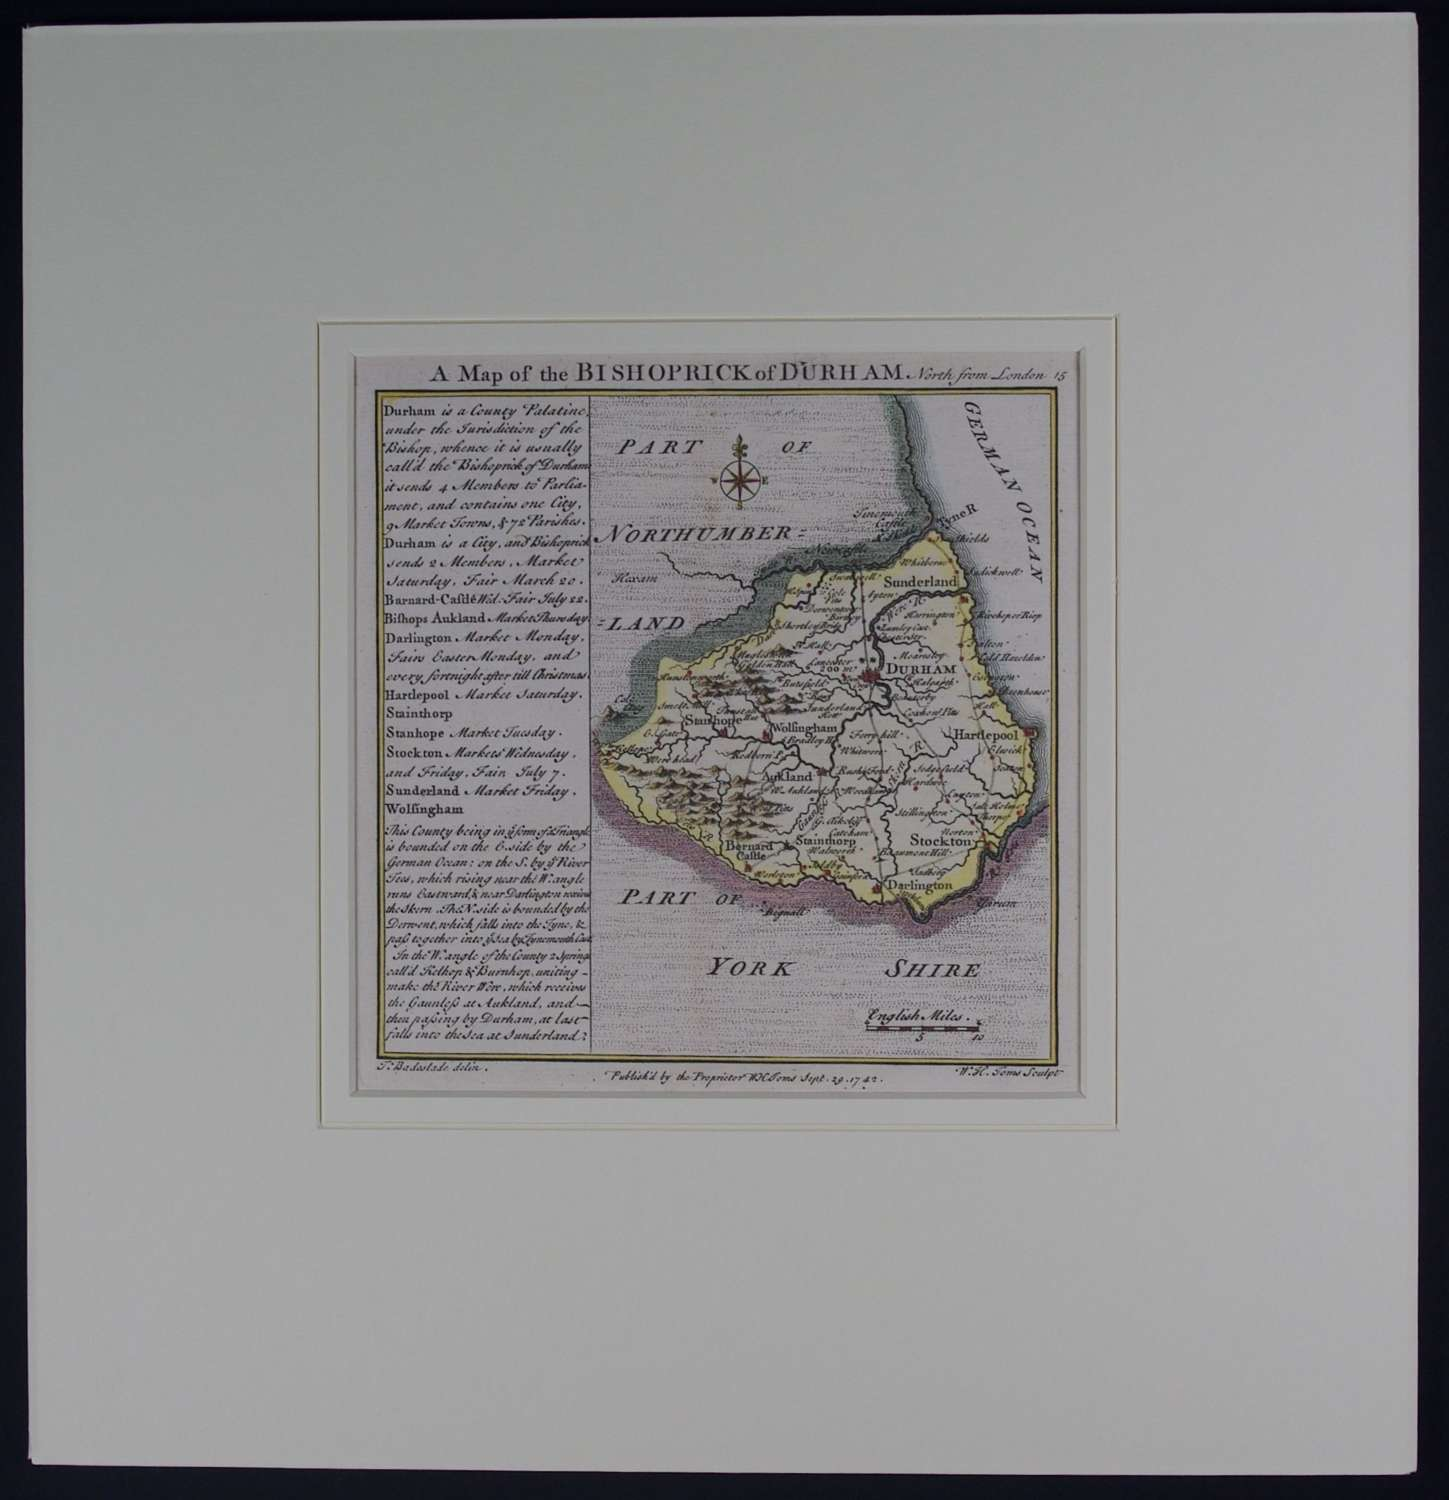 A Map of the Bishoprick of Durham by Thomas Badeslade